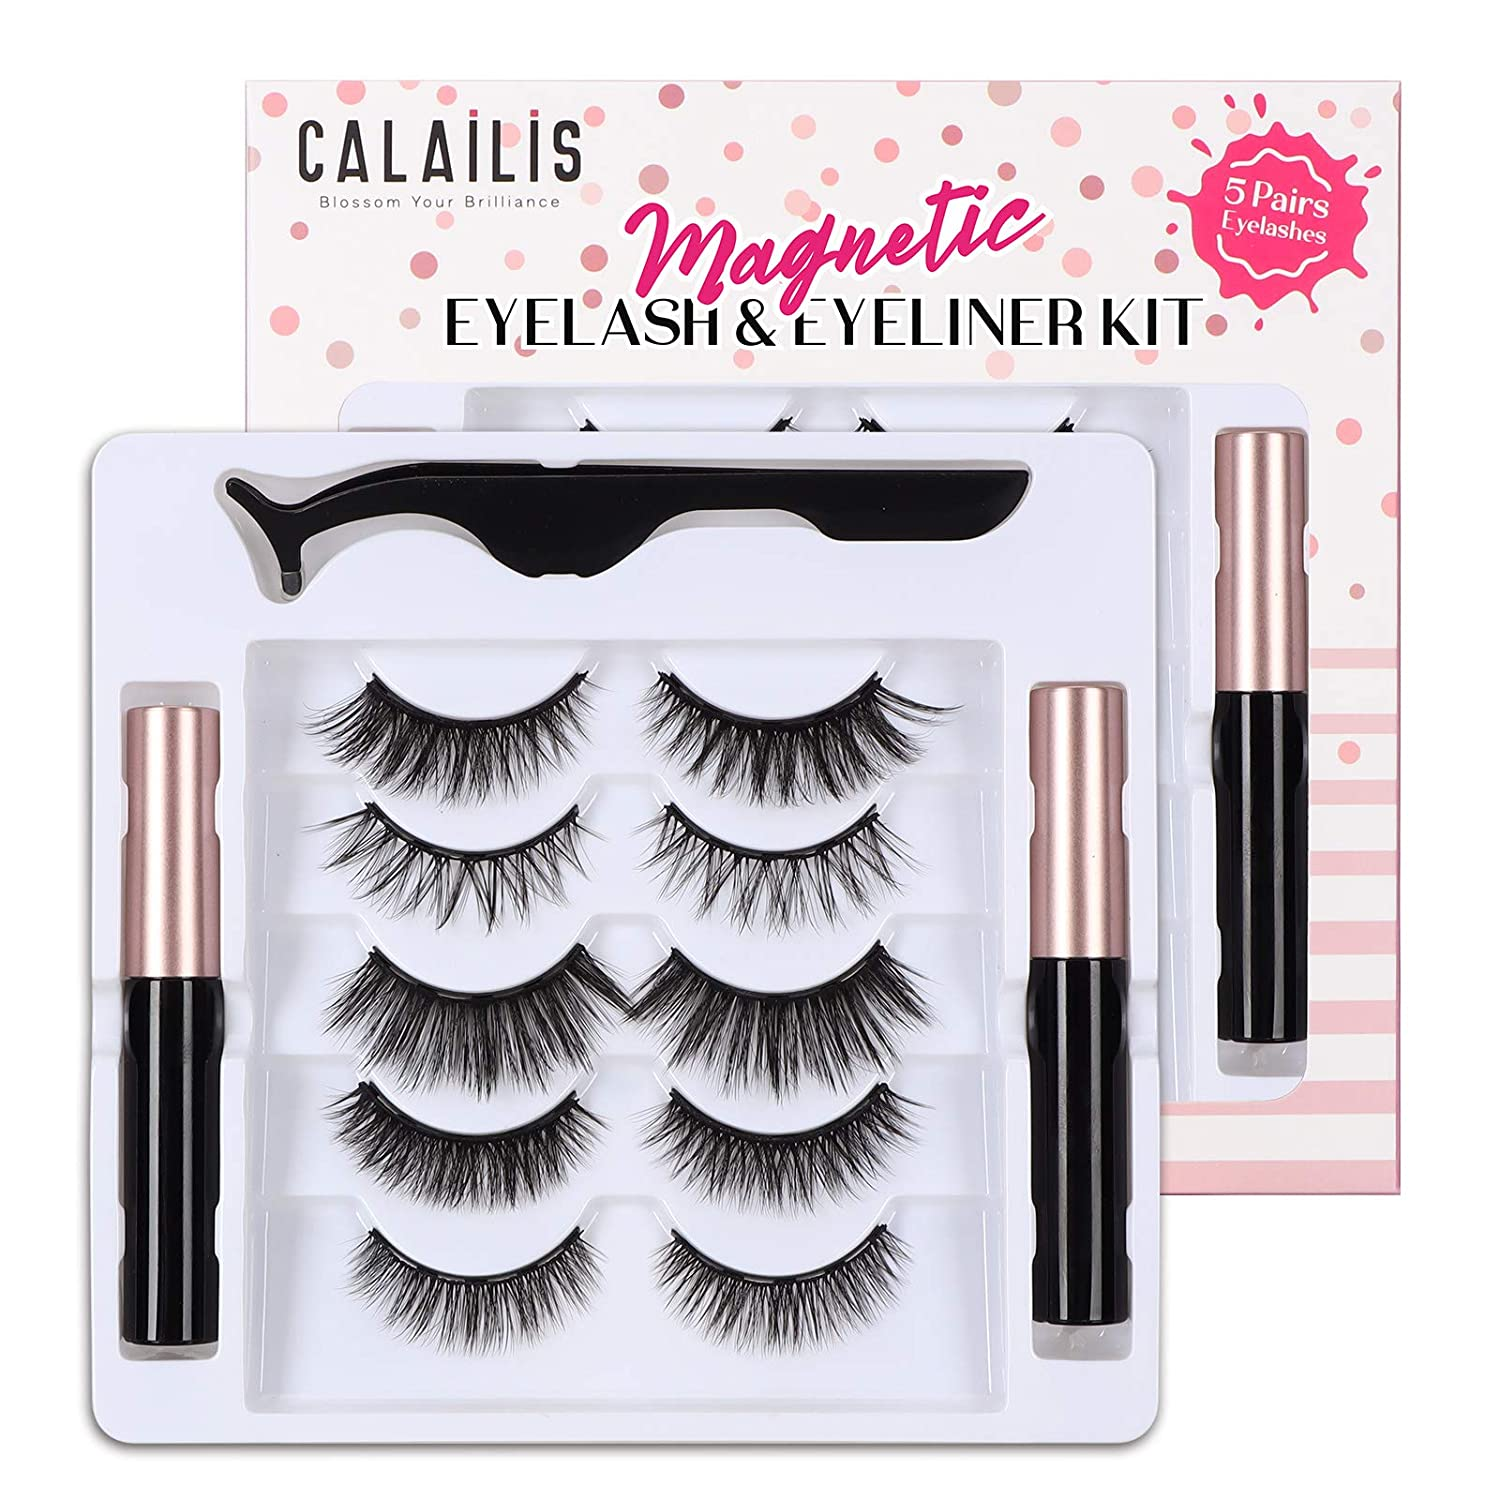 Girlistan - Are you looking for a simple, hassle-free artificial eyelashes experience? You should know this about Magnetic eyelashes.